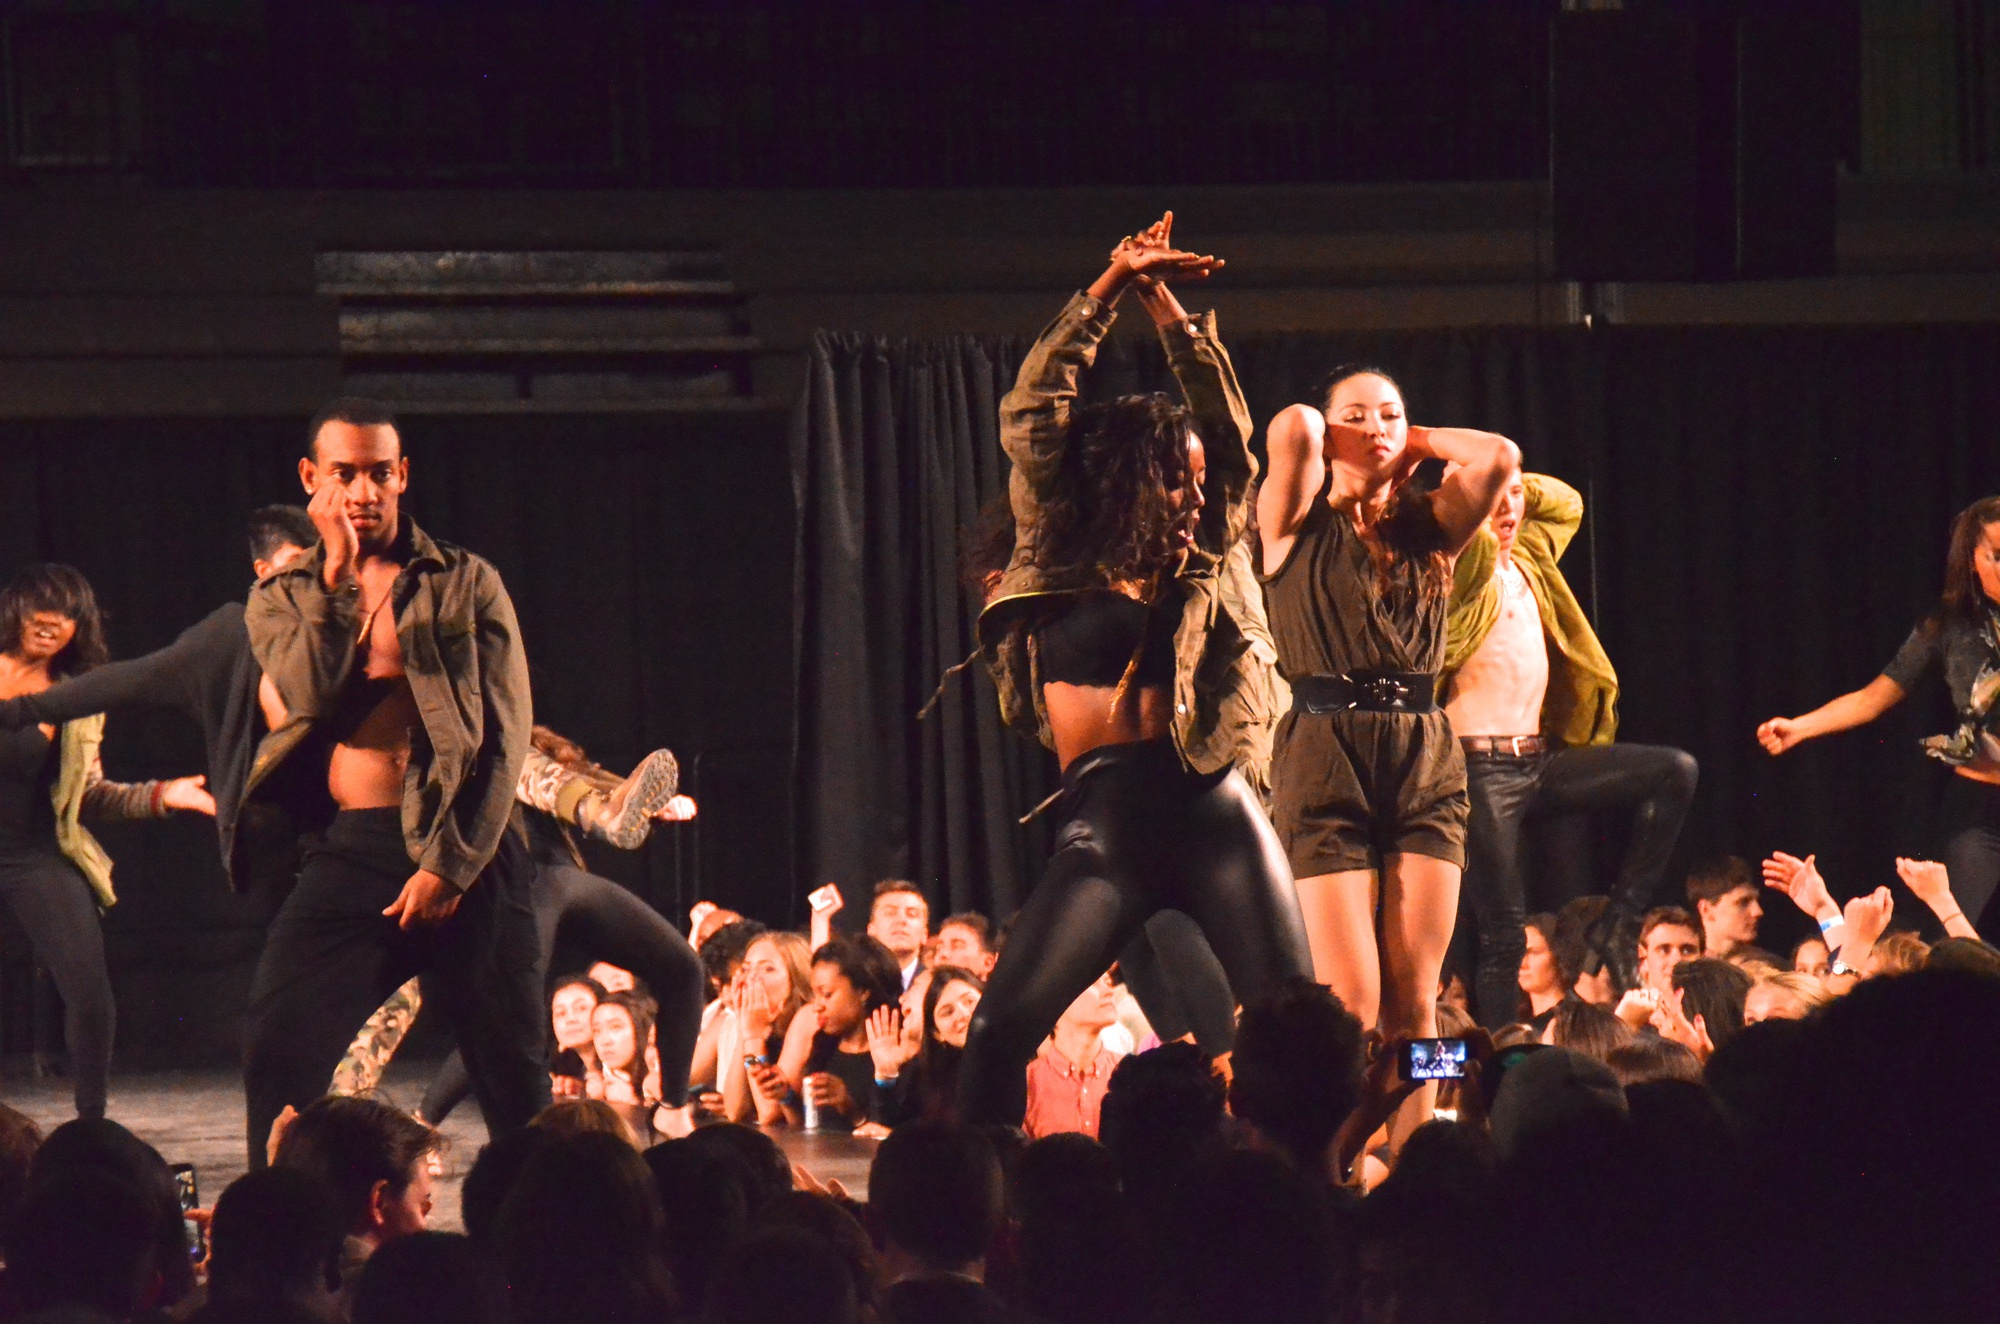 """Students perform in campus charity fashion show Eleganza 2015: """"Pandora's Box"""" at Lavietes Pavilion. The show, which is one of the largest student events at Harvard University, sold out its performance, with all proceeds going to the Boston Center For Teen Empowerment."""